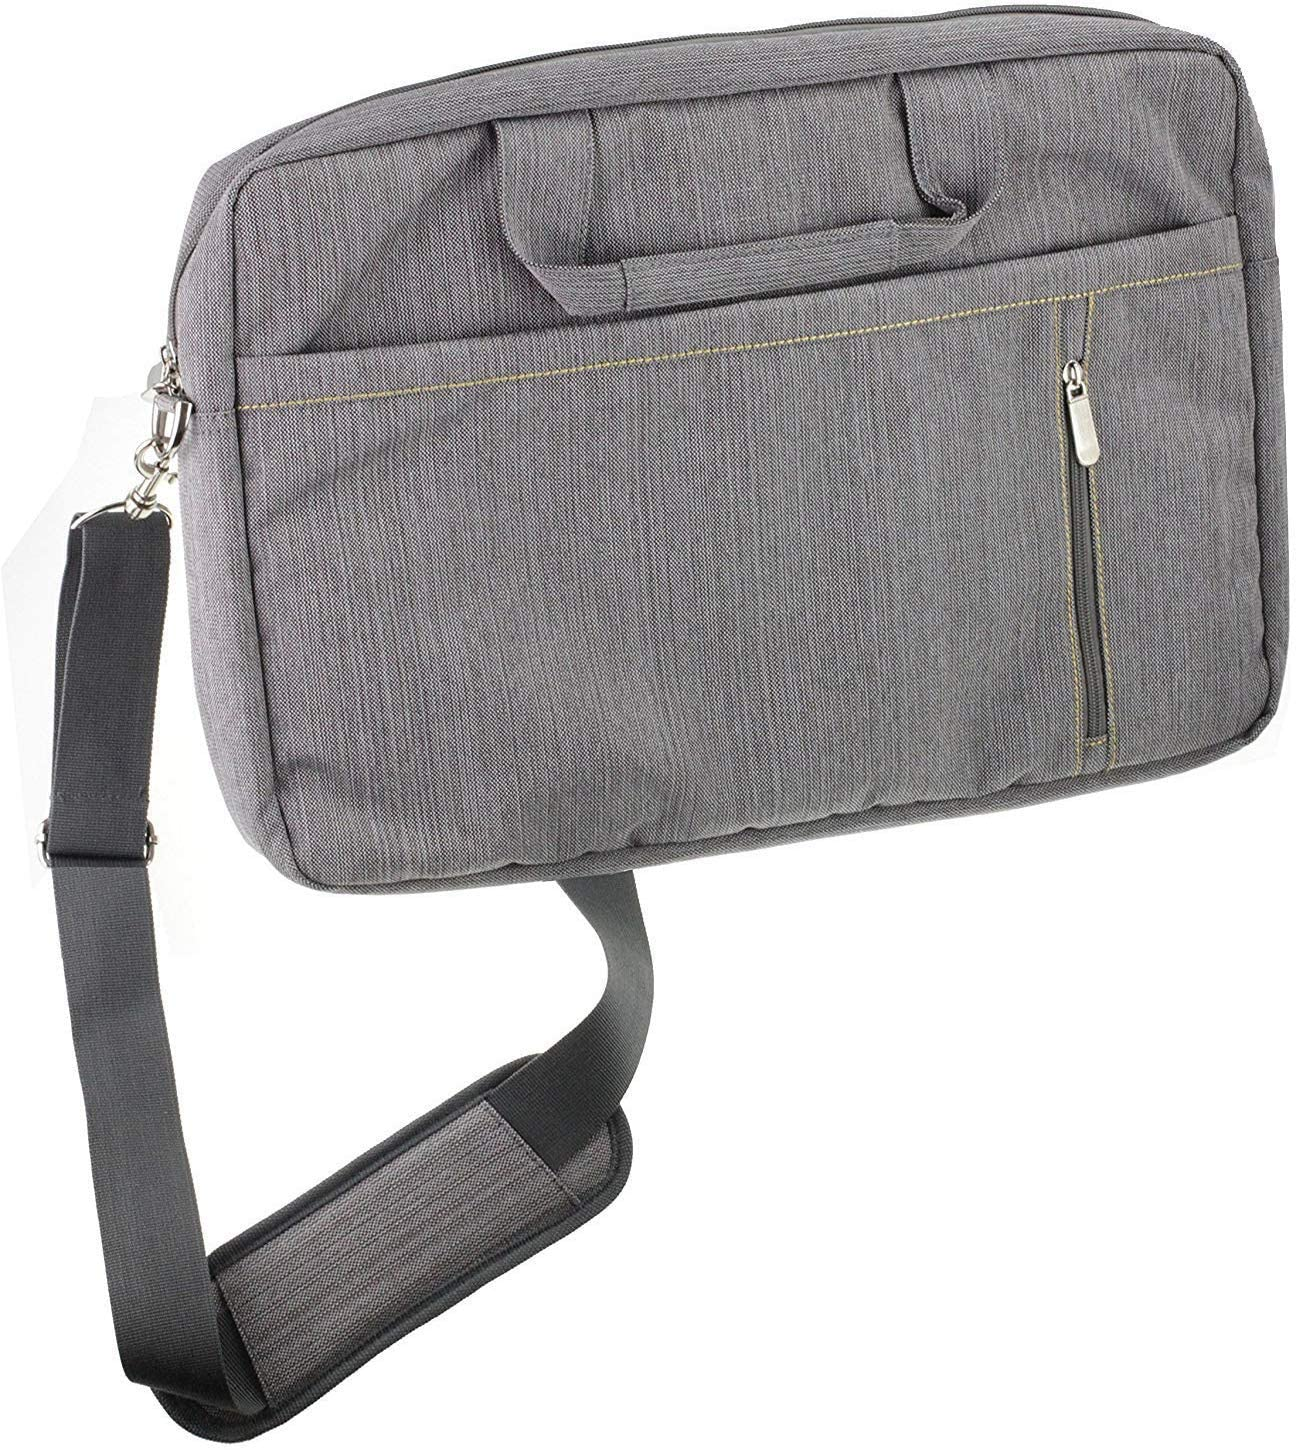 Navitech Grey Premium Messenger/Carry Bag Compatible with The Acer Aspire 5 A515-43 15.6 Inch Laptop